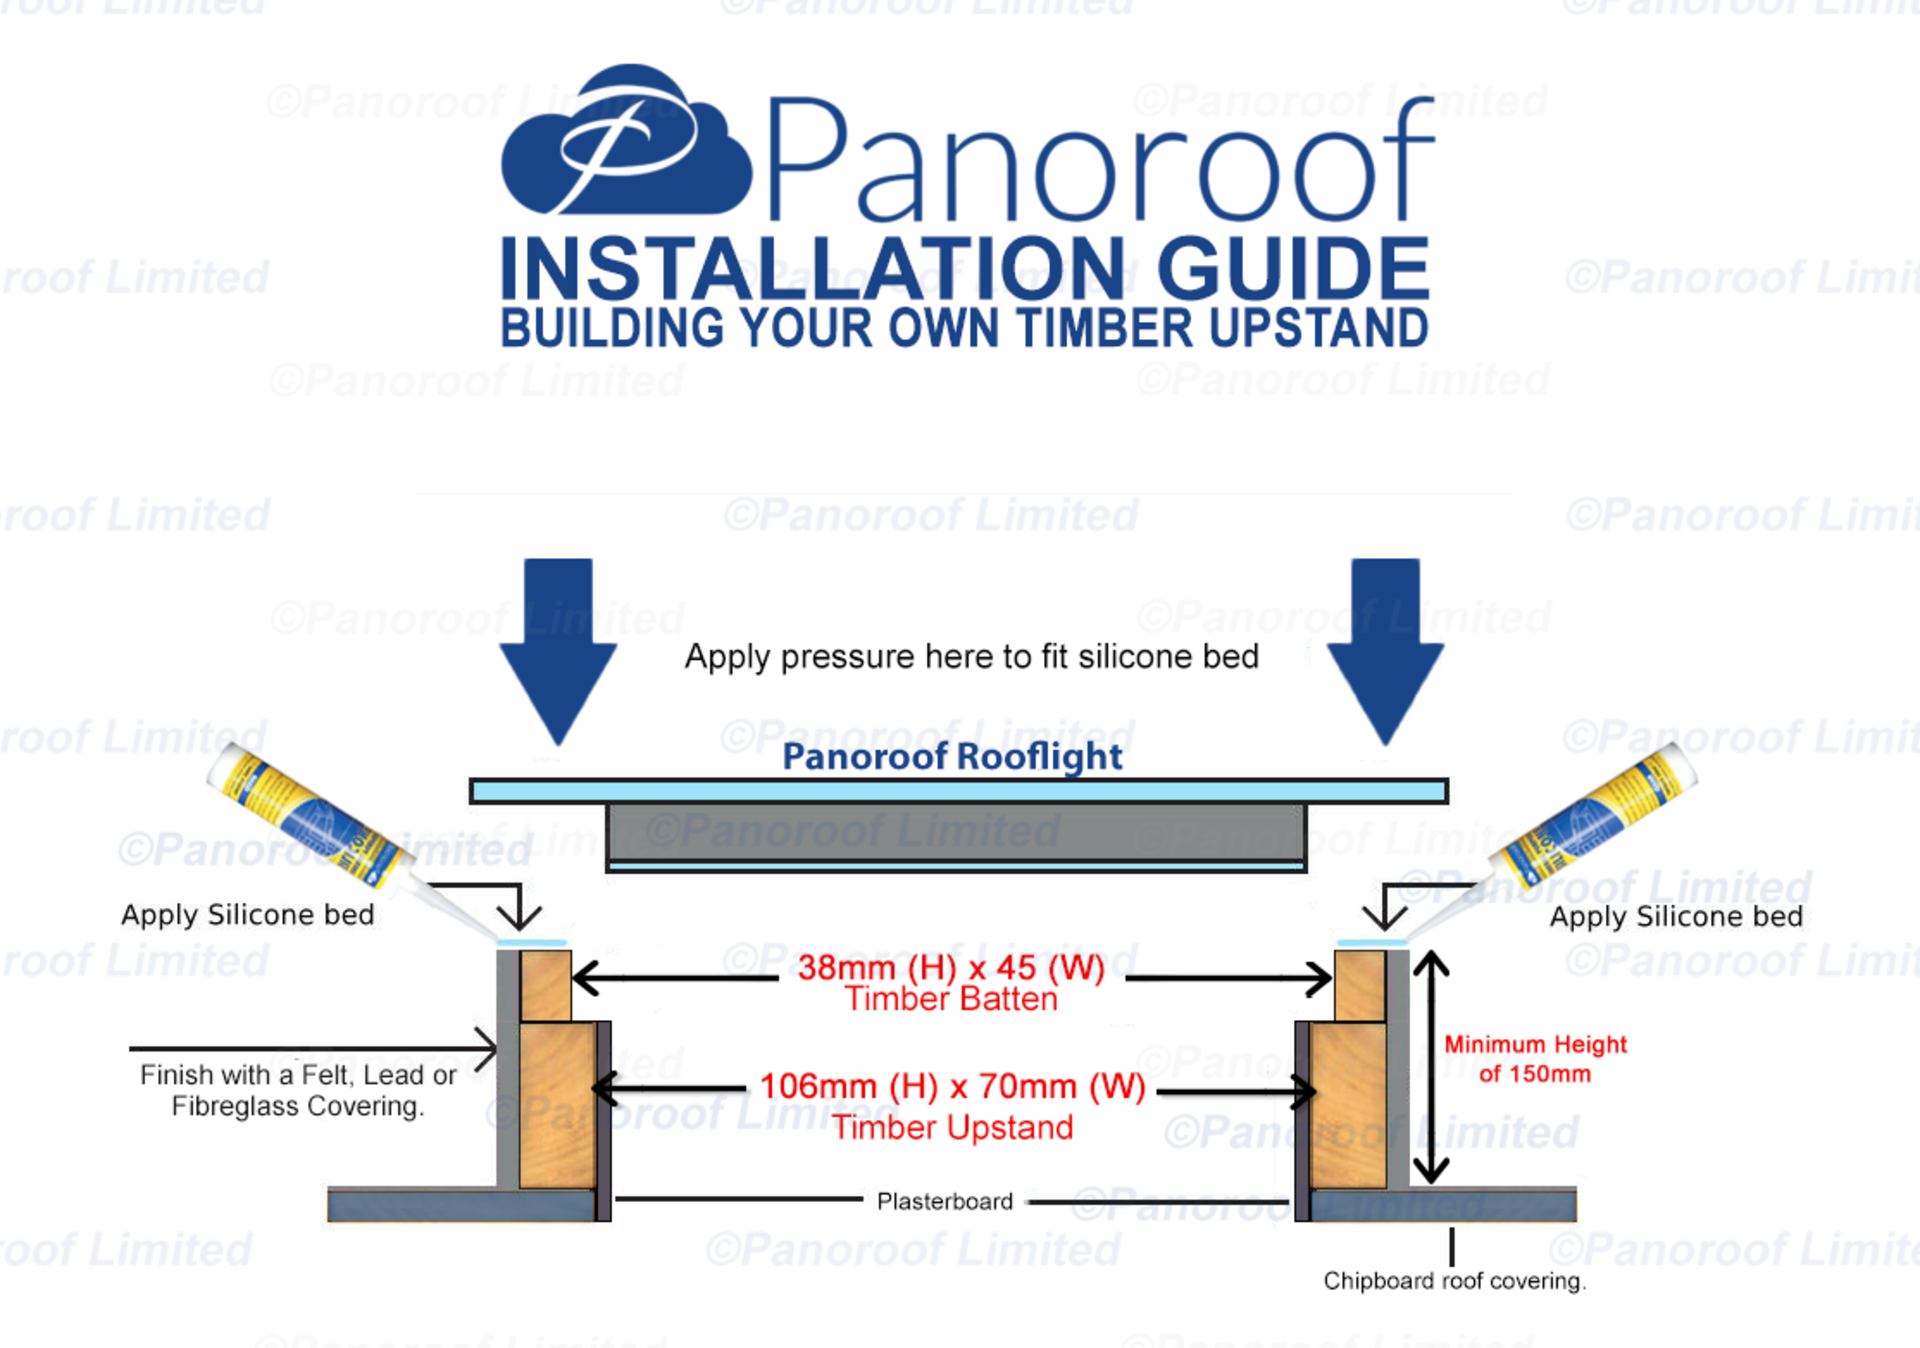 Panoroof 1000x4000mm (inside Size Visable glass area) Seamless Glass Skylight Flat Roof Rooflight - Image 3 of 6